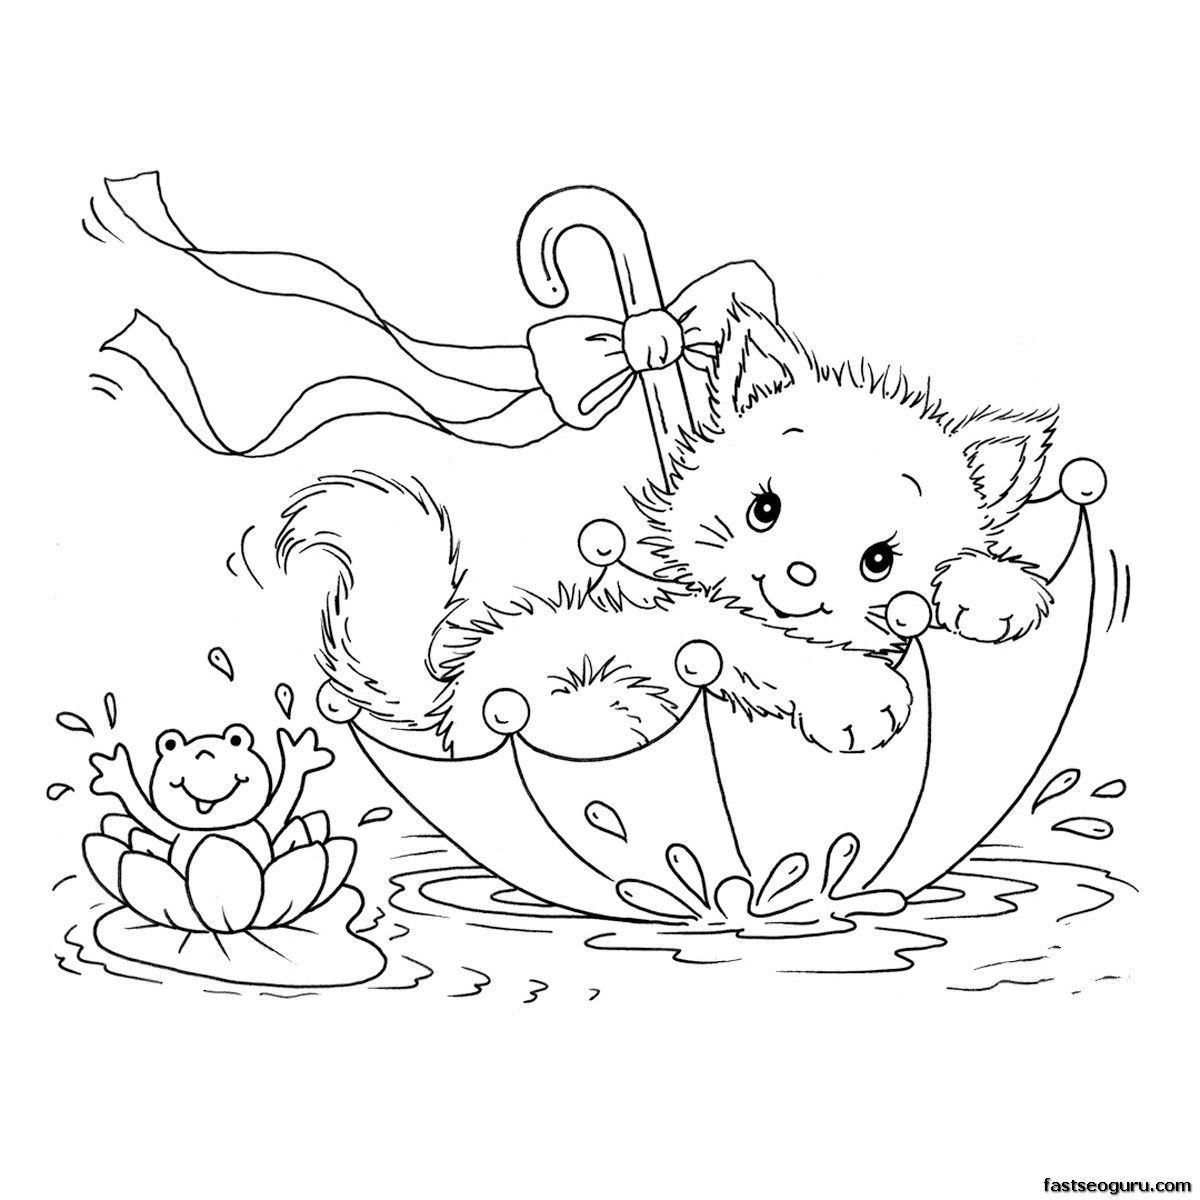 Printabel Coloring Pages Kitty Cat And Frog In Umbrella